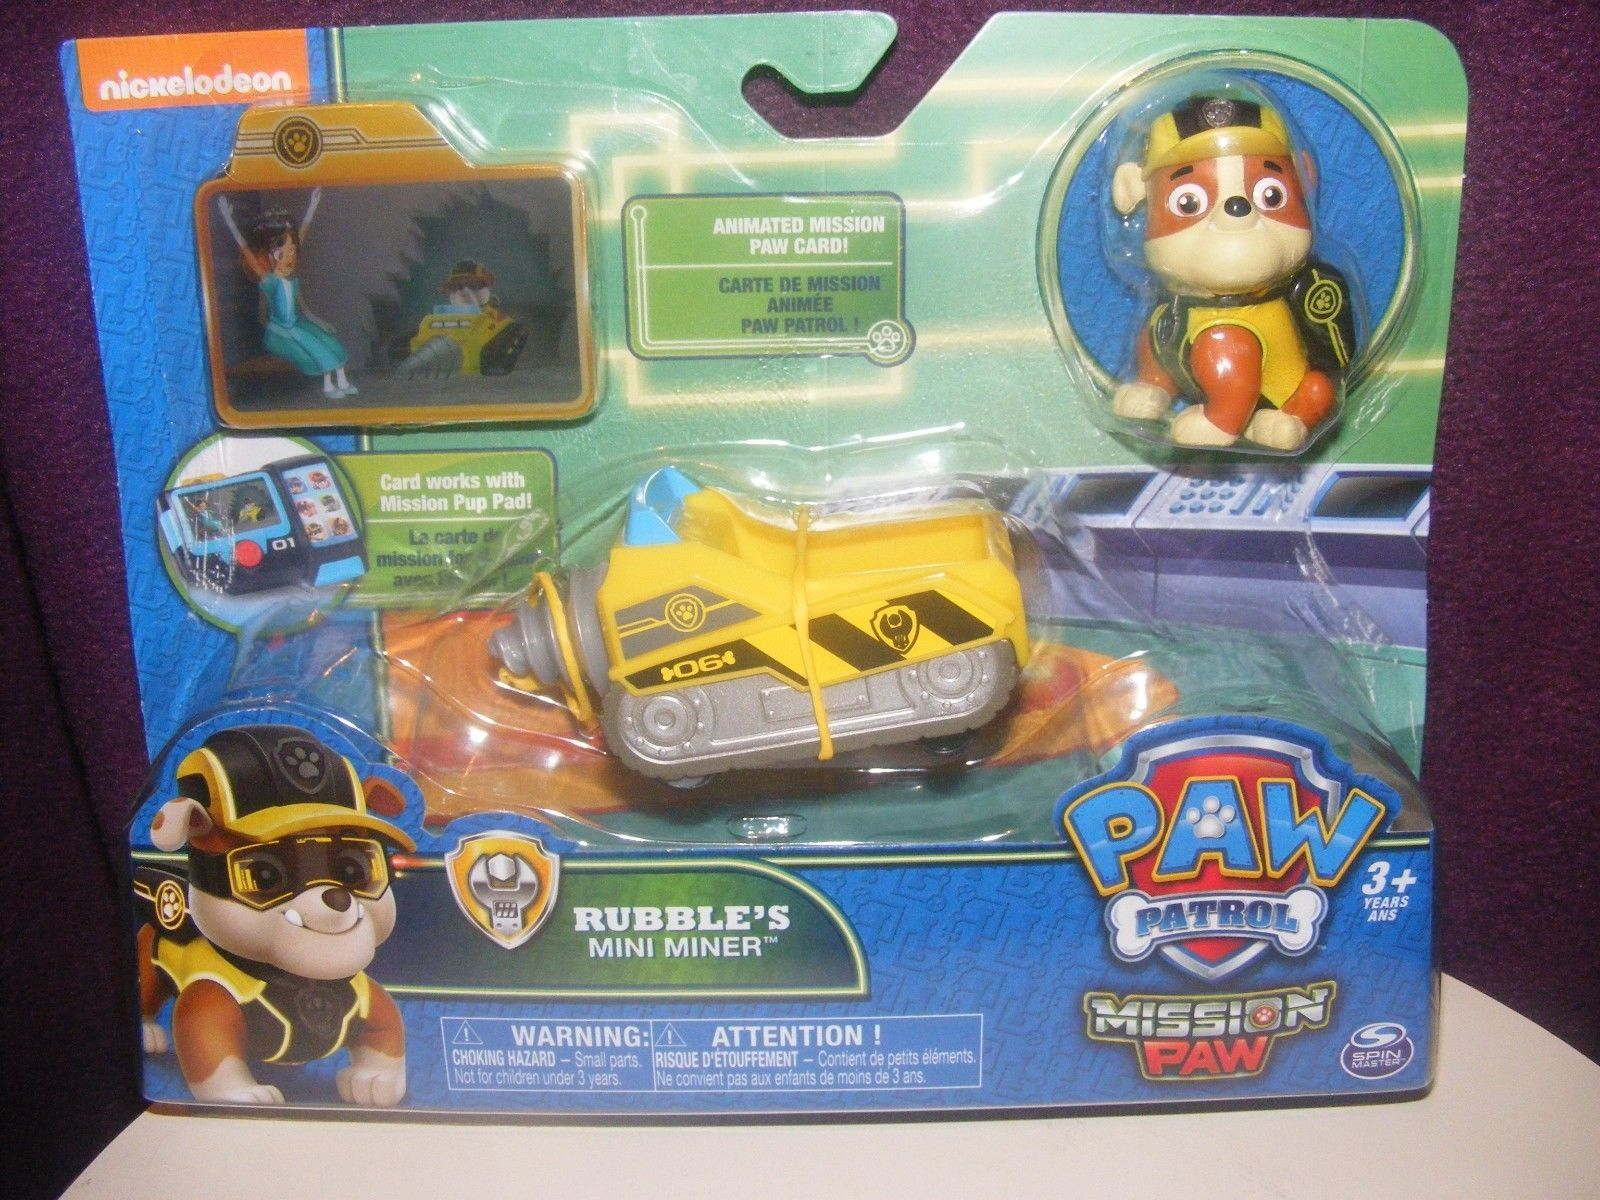 Figure and Vehicle Rubble's Mini Miner Paw Patrol Mission Paw